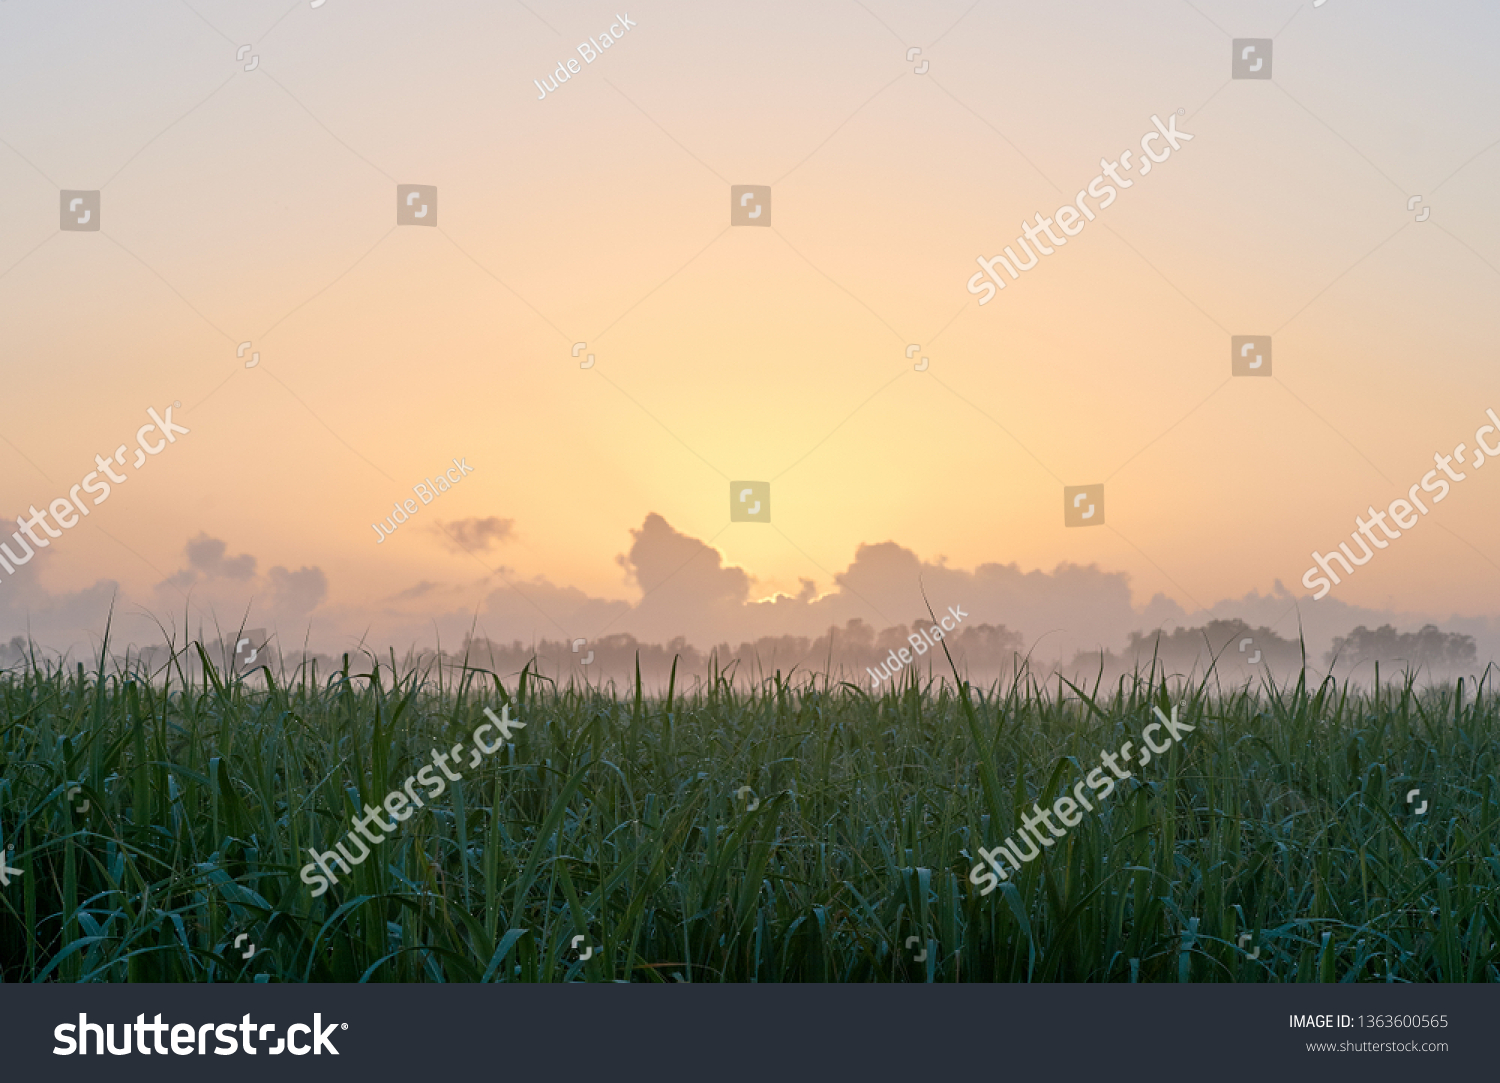 The dawn sun rising over a rural sugar cane farm, in the Clarence Valley of northern NSW, Australia. The dew laden cane in the foreground, and mist and clouds in the distance on the horizon.